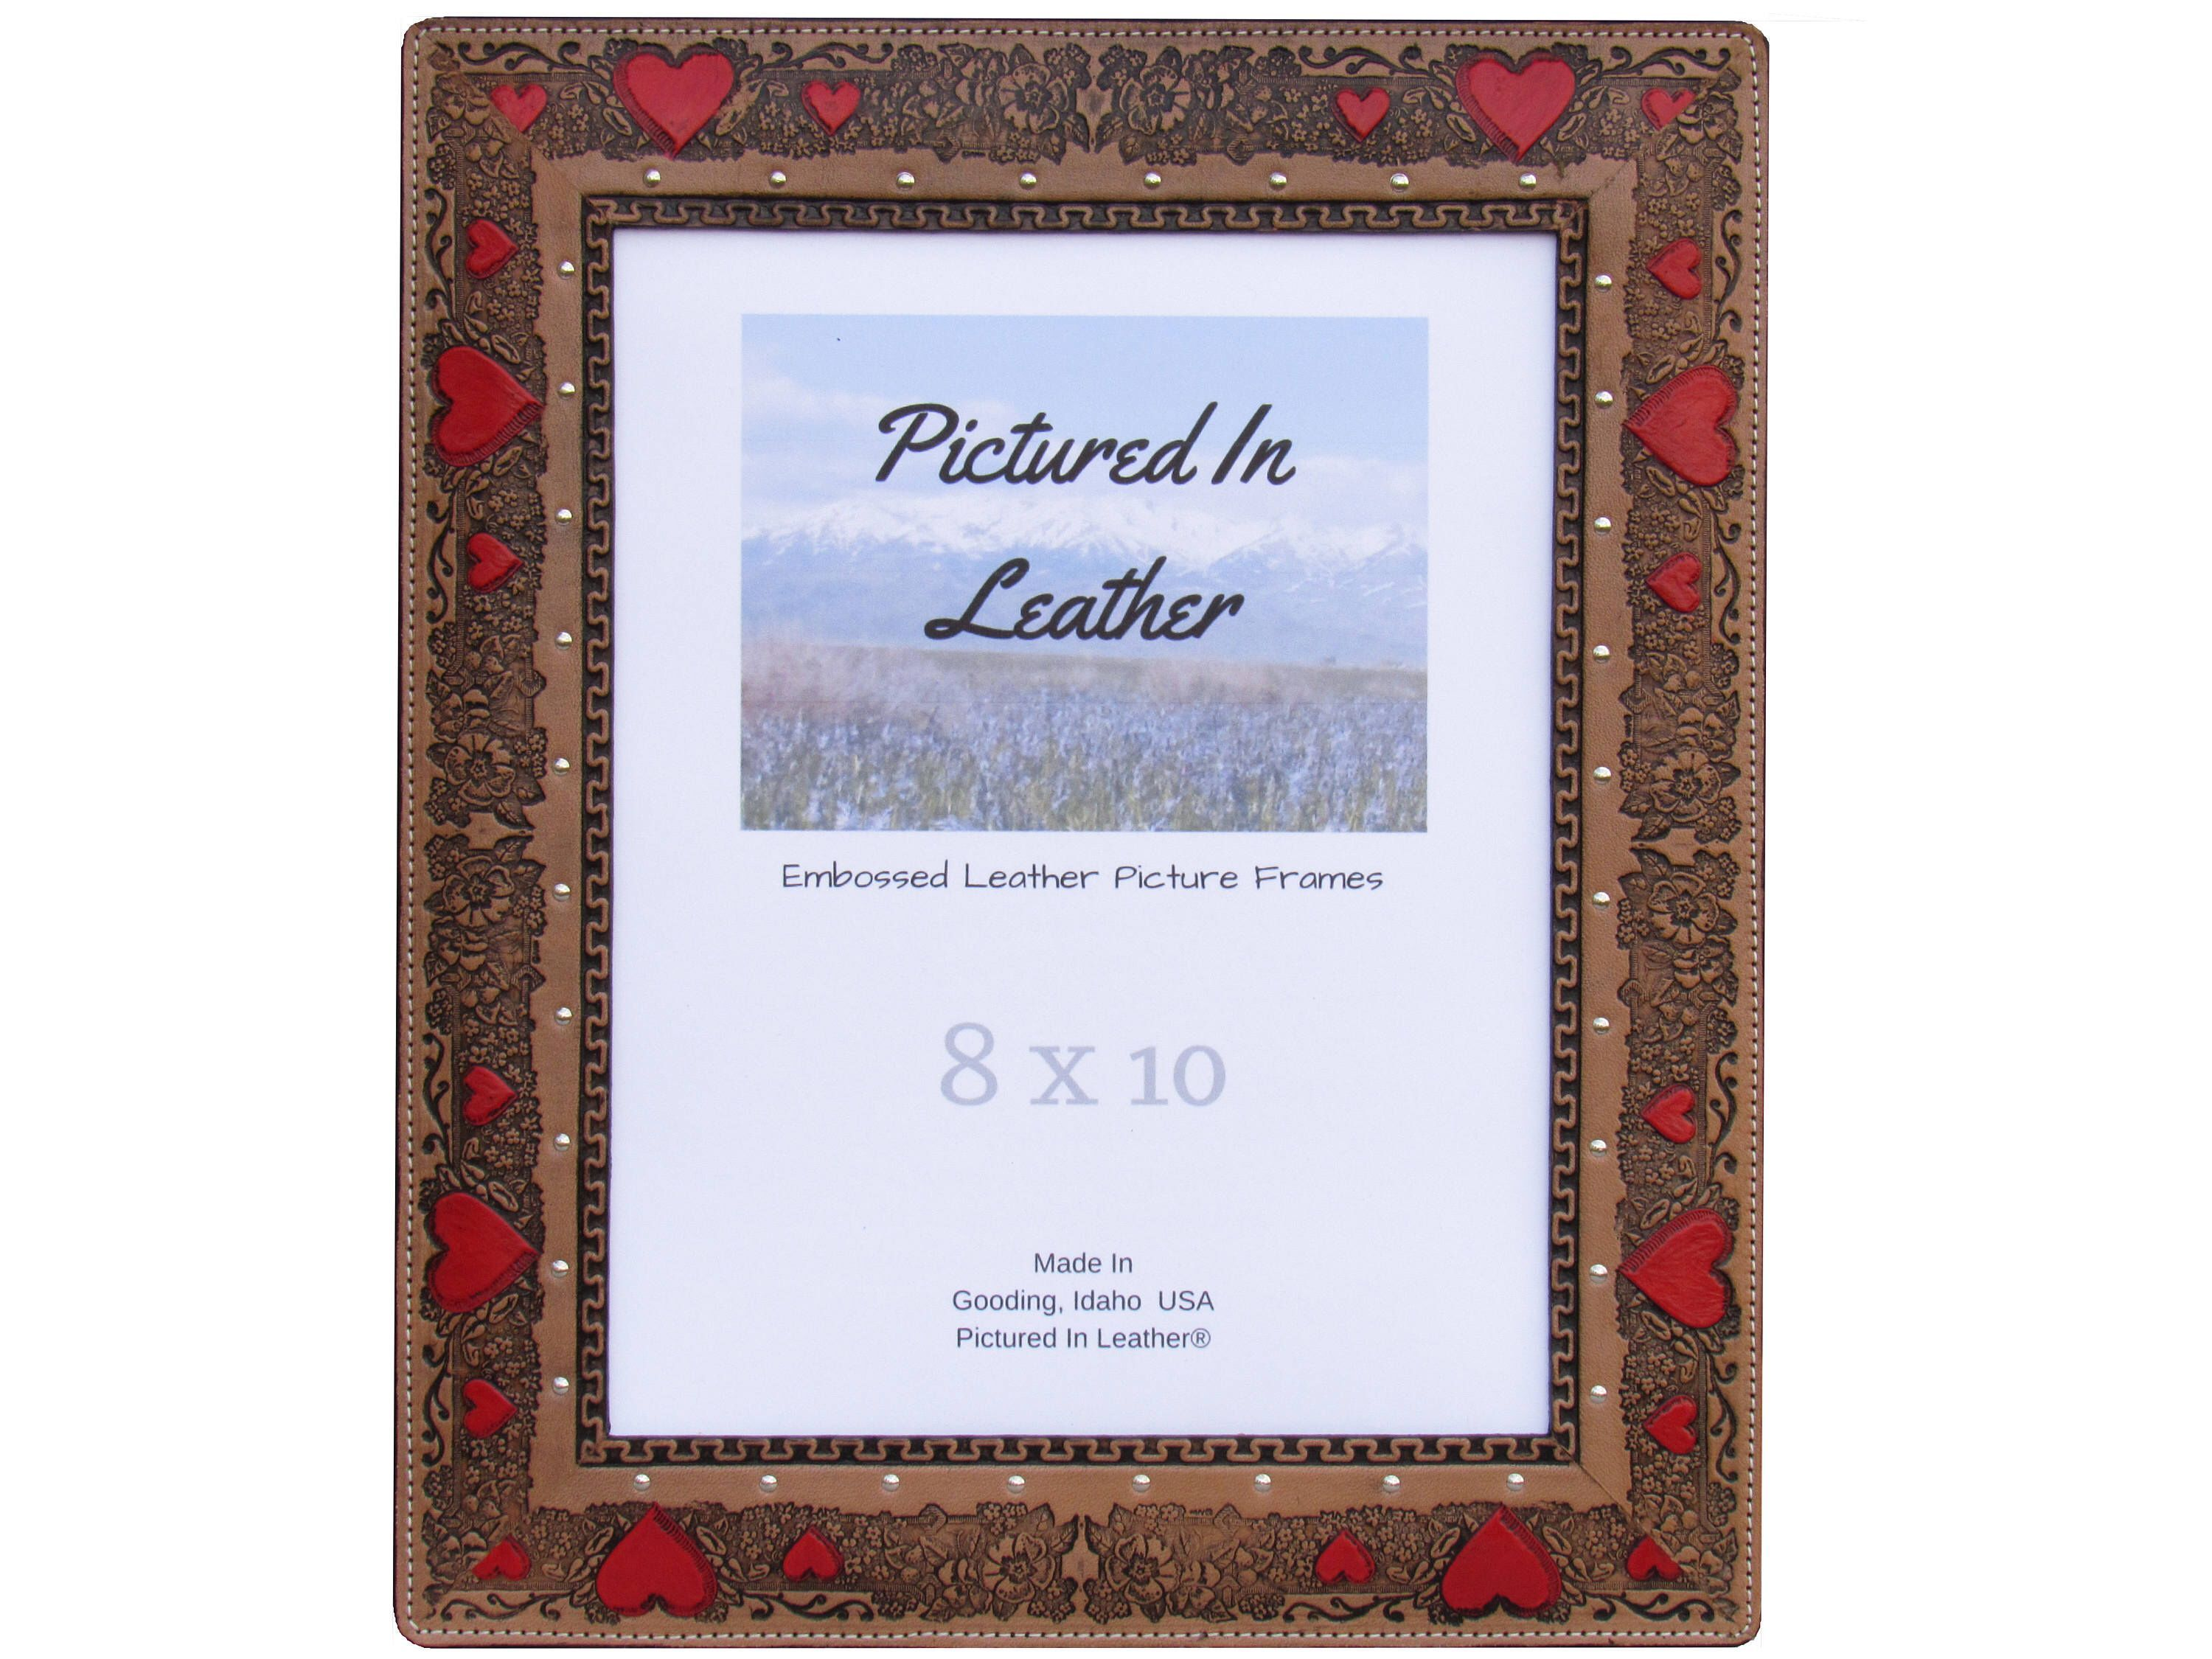 Valentines Day gift for wife, 8x10 leather picture frame, wedding ...